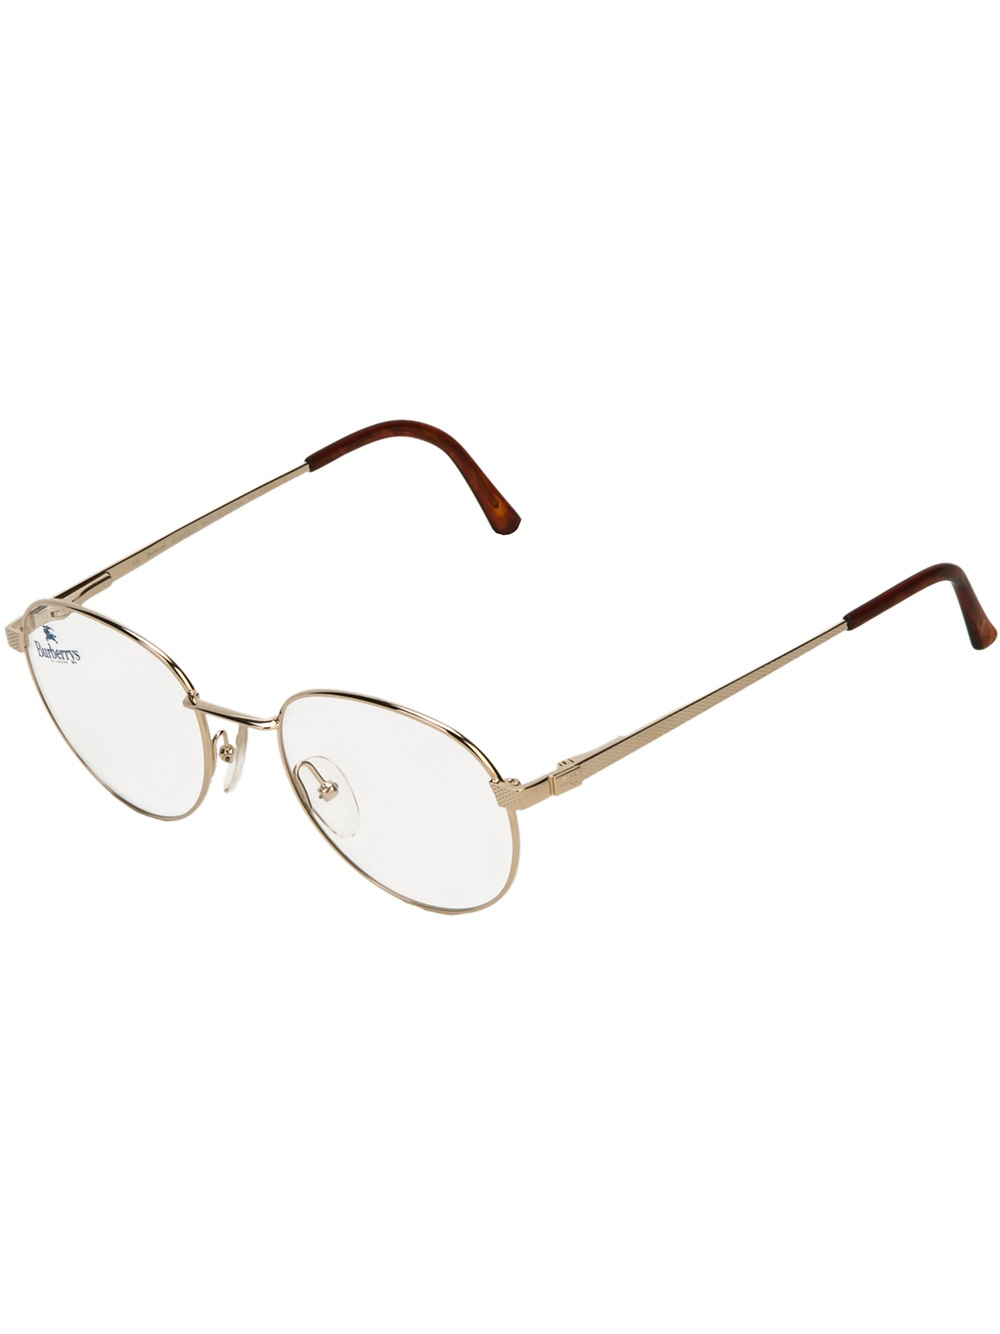 a5aecbea1e Lyst - Burberry Round Frame Glasses in Metallic for Men